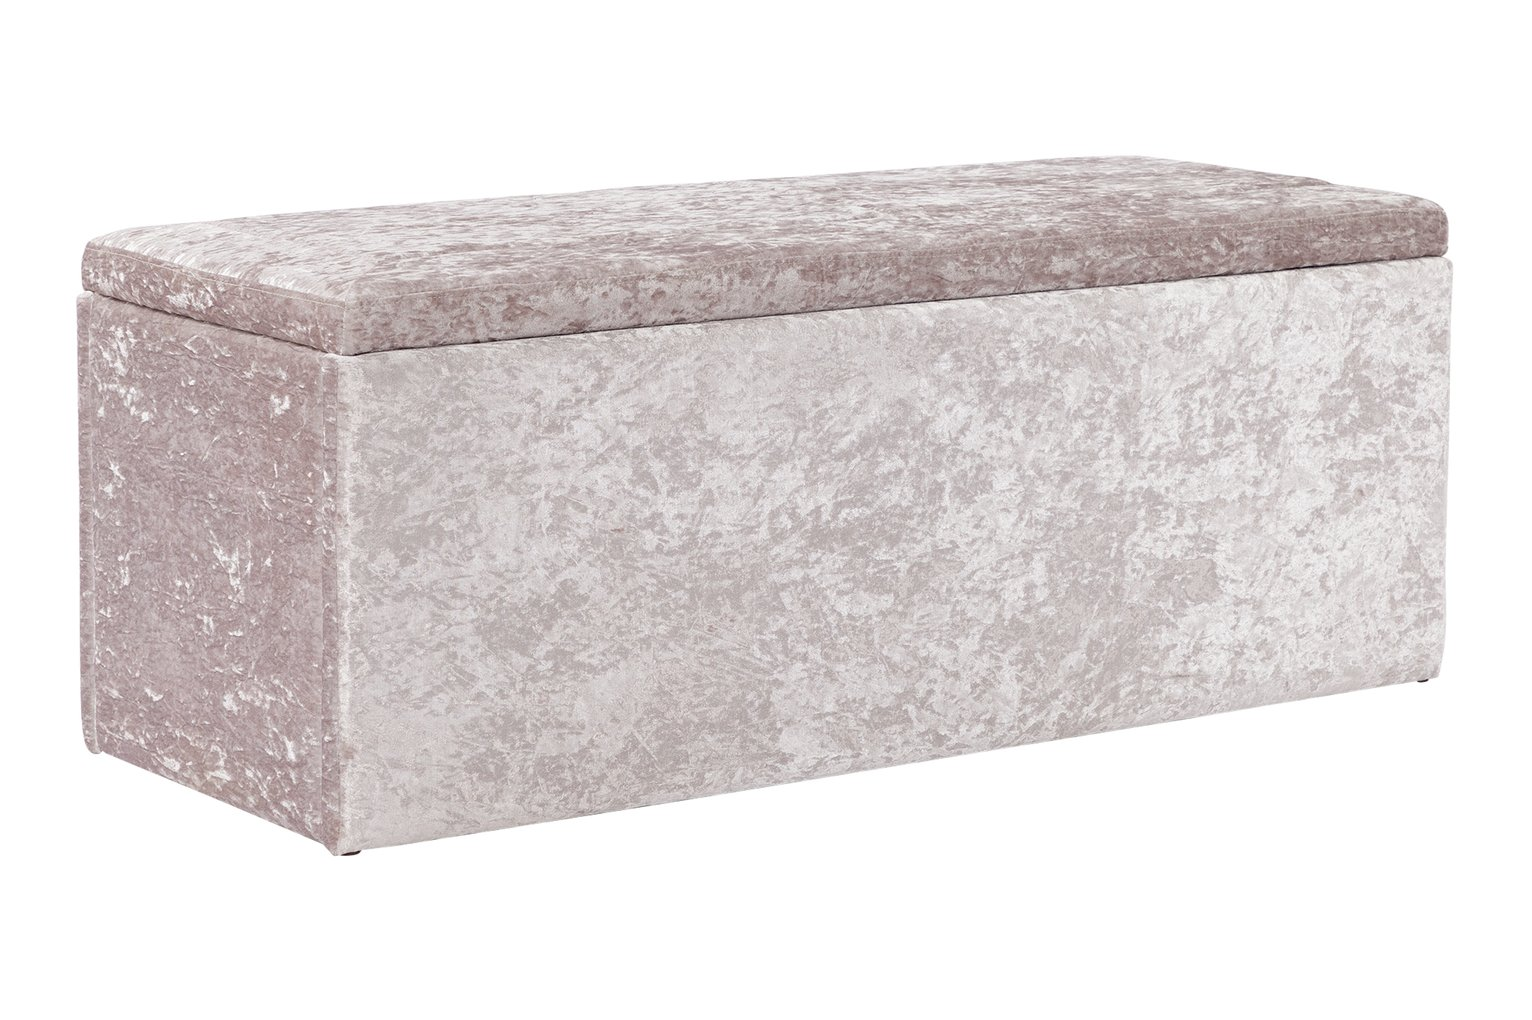 Argos Home Kourtney Crushed Velvet Ottoman - Silver